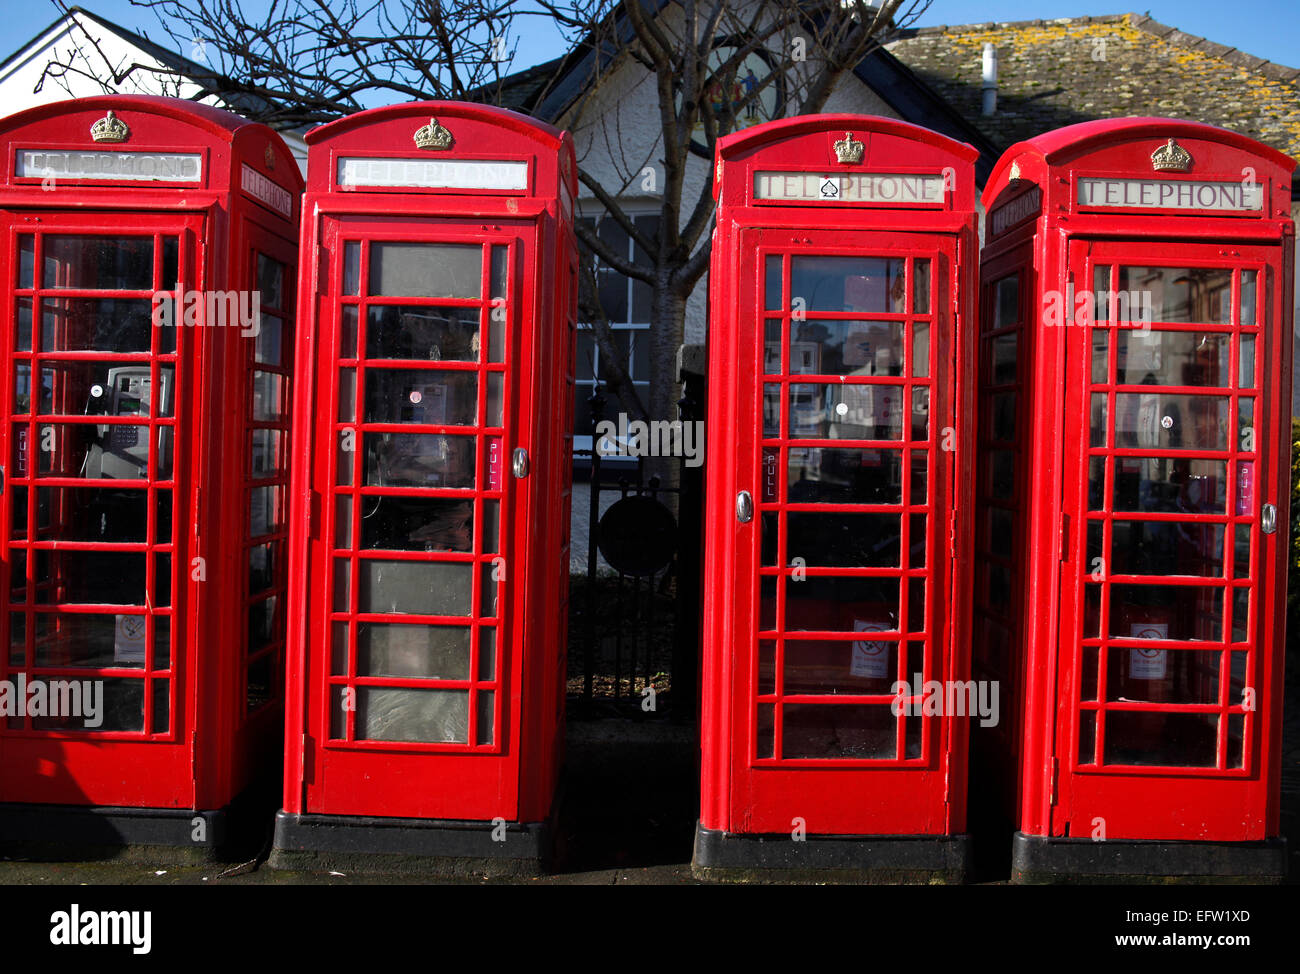 Traditional red telephone call boxes in Truro, Cornwall. - Stock Image